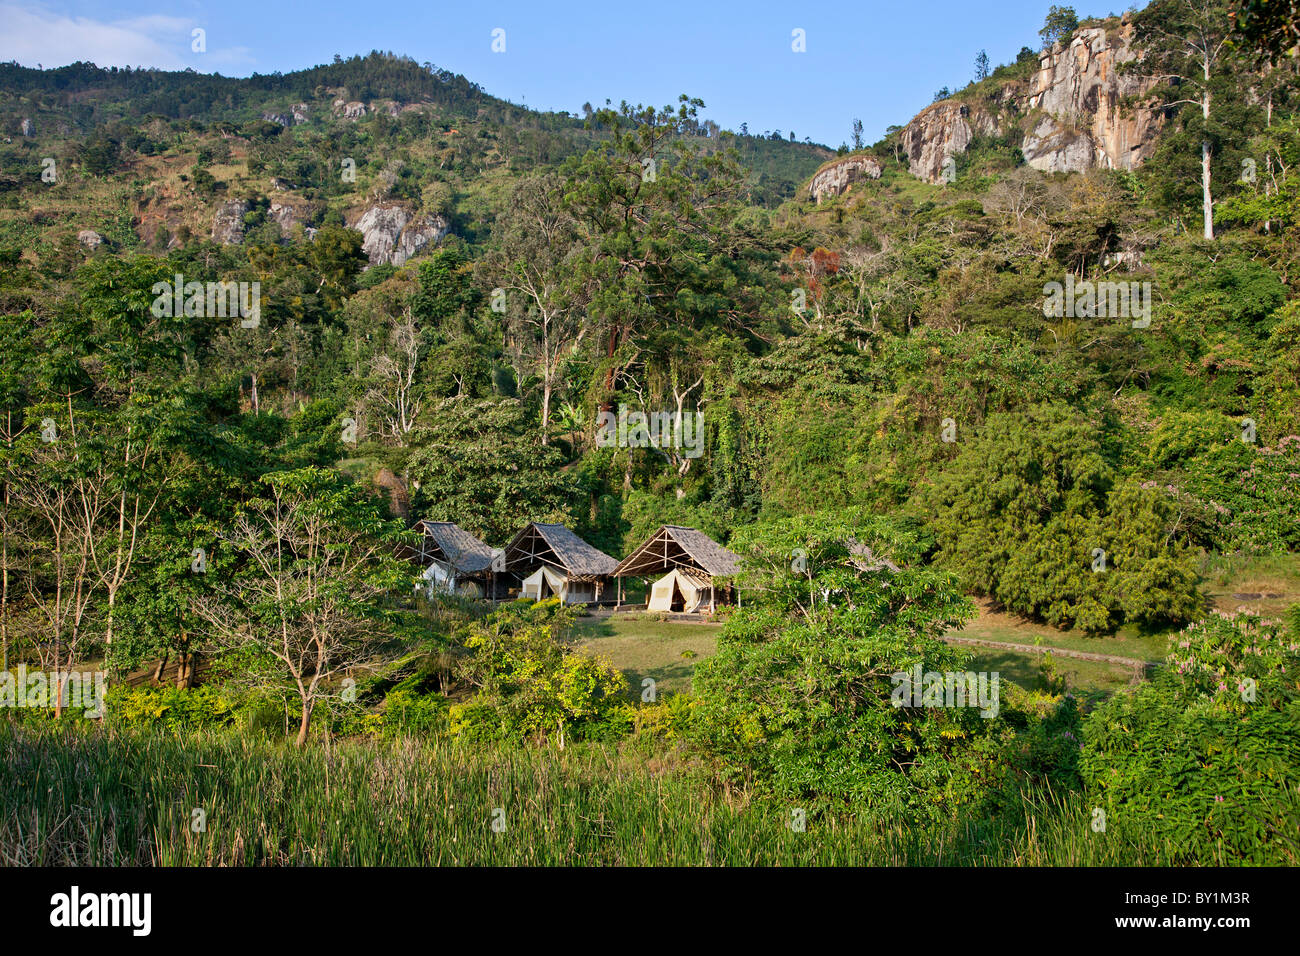 Tented accommodation at a farm near Soni in the Western Arc of the Usambara Mountains. - Stock Image